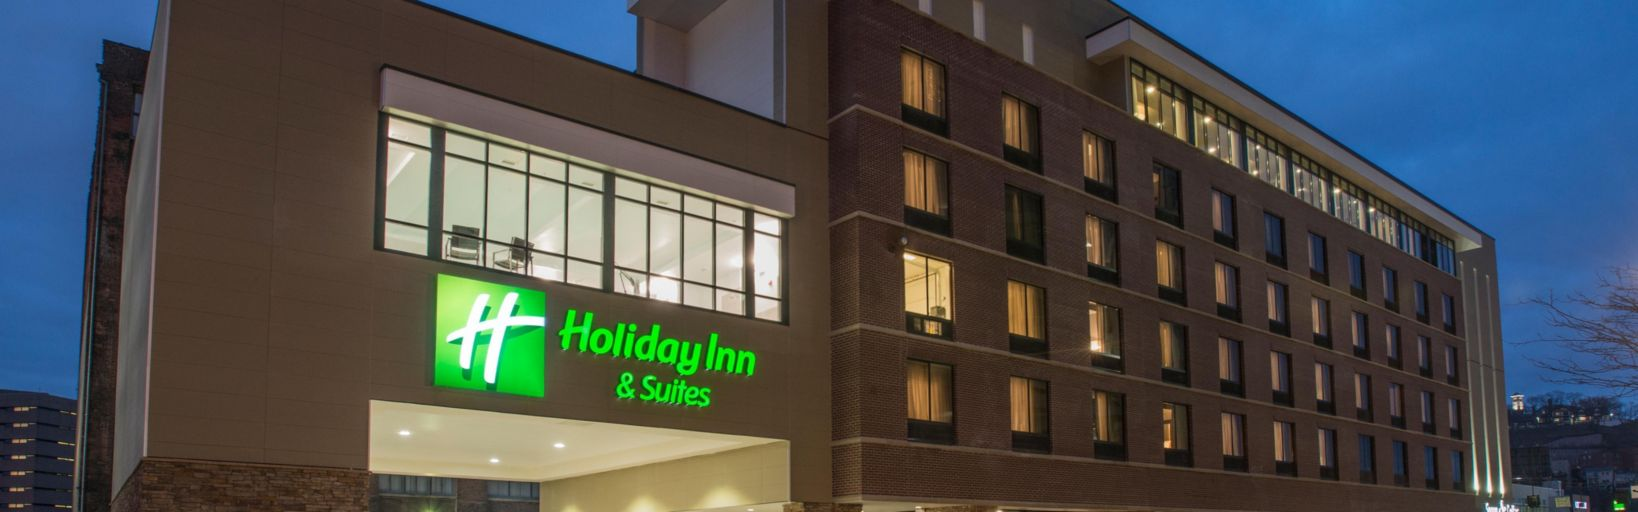 Holiday Inn Hotel & Suites Cincinnati Downtown Hotel by IHG